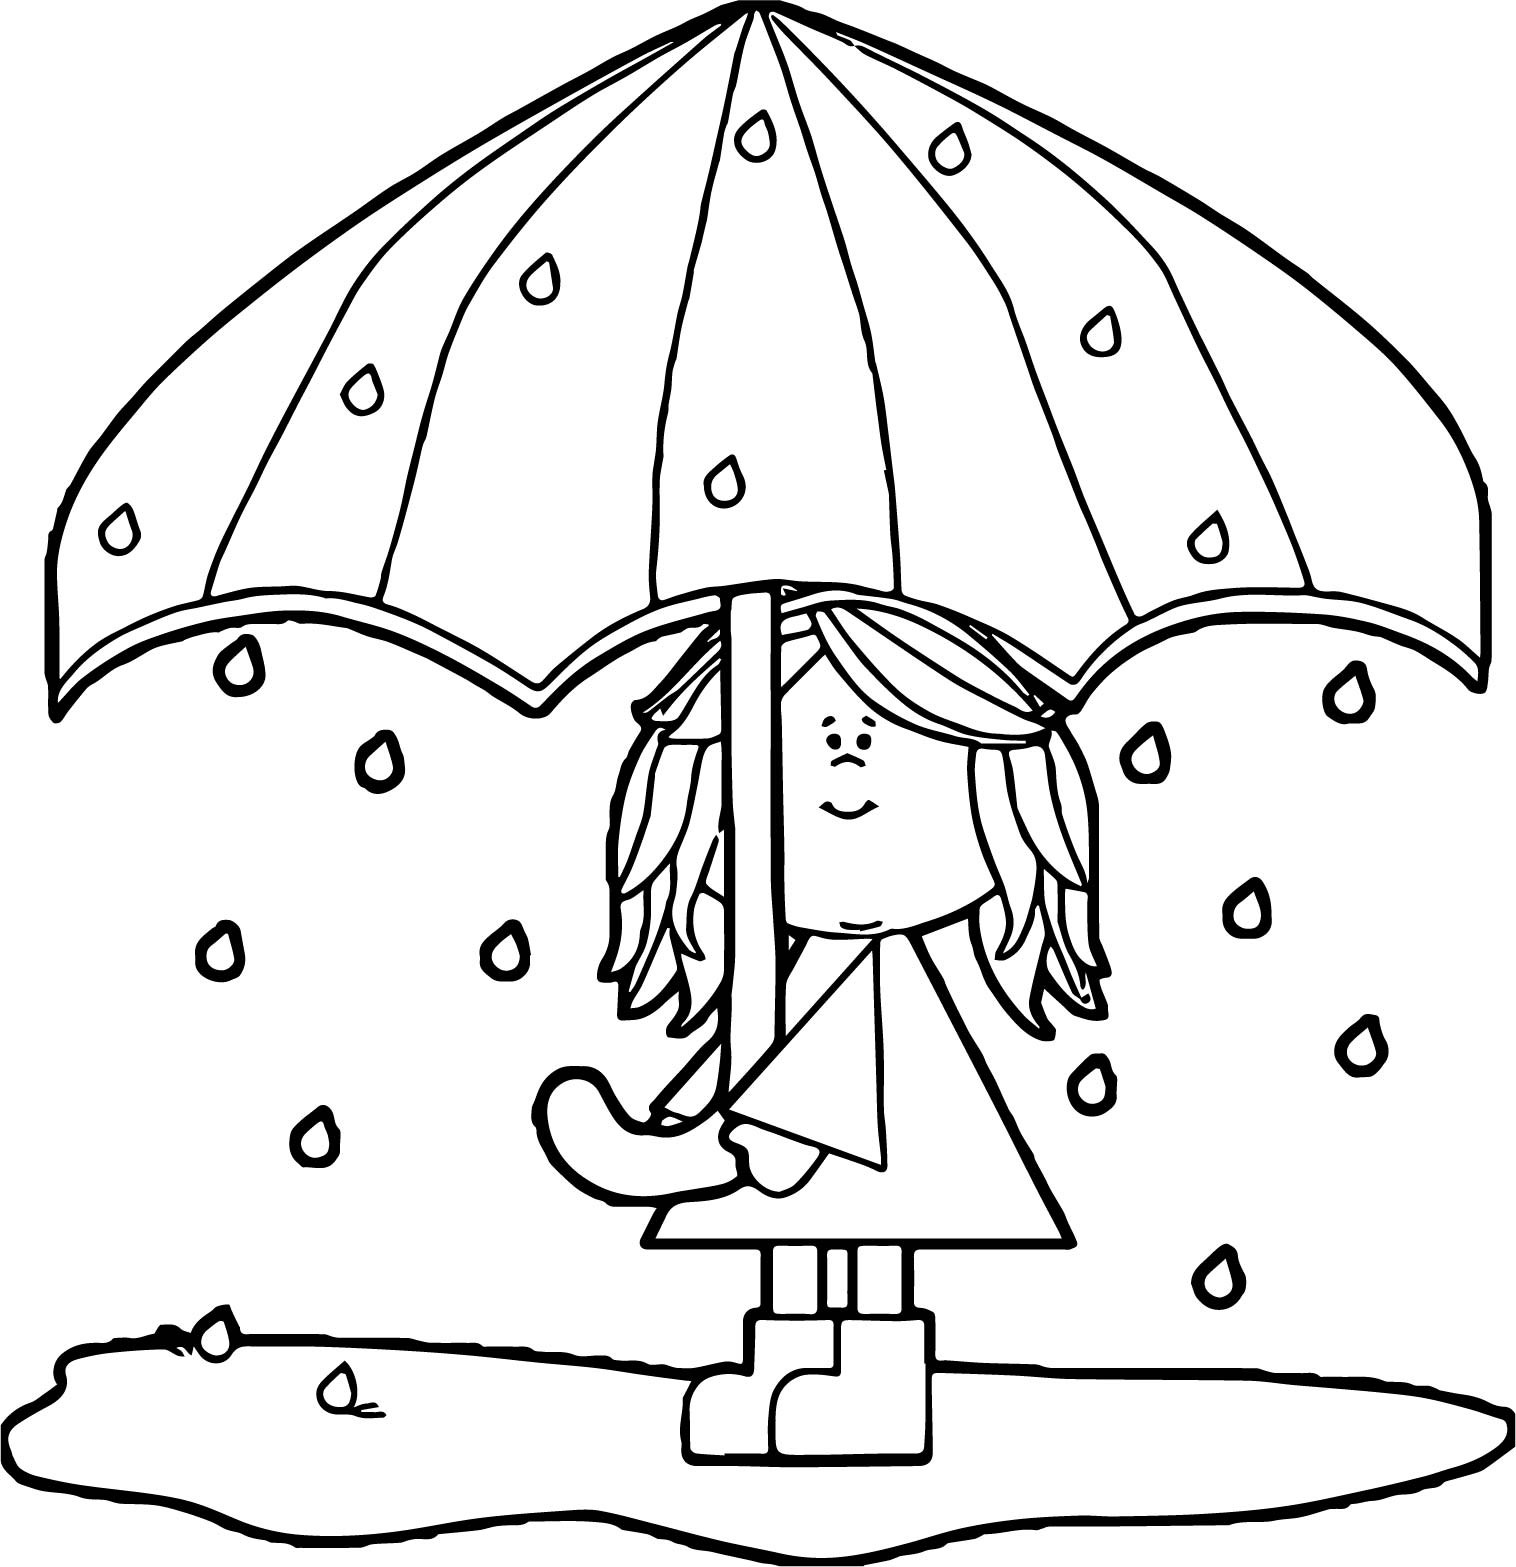 1516x1567 Wealth April Showers Coloring Pages With Bring May Flowers